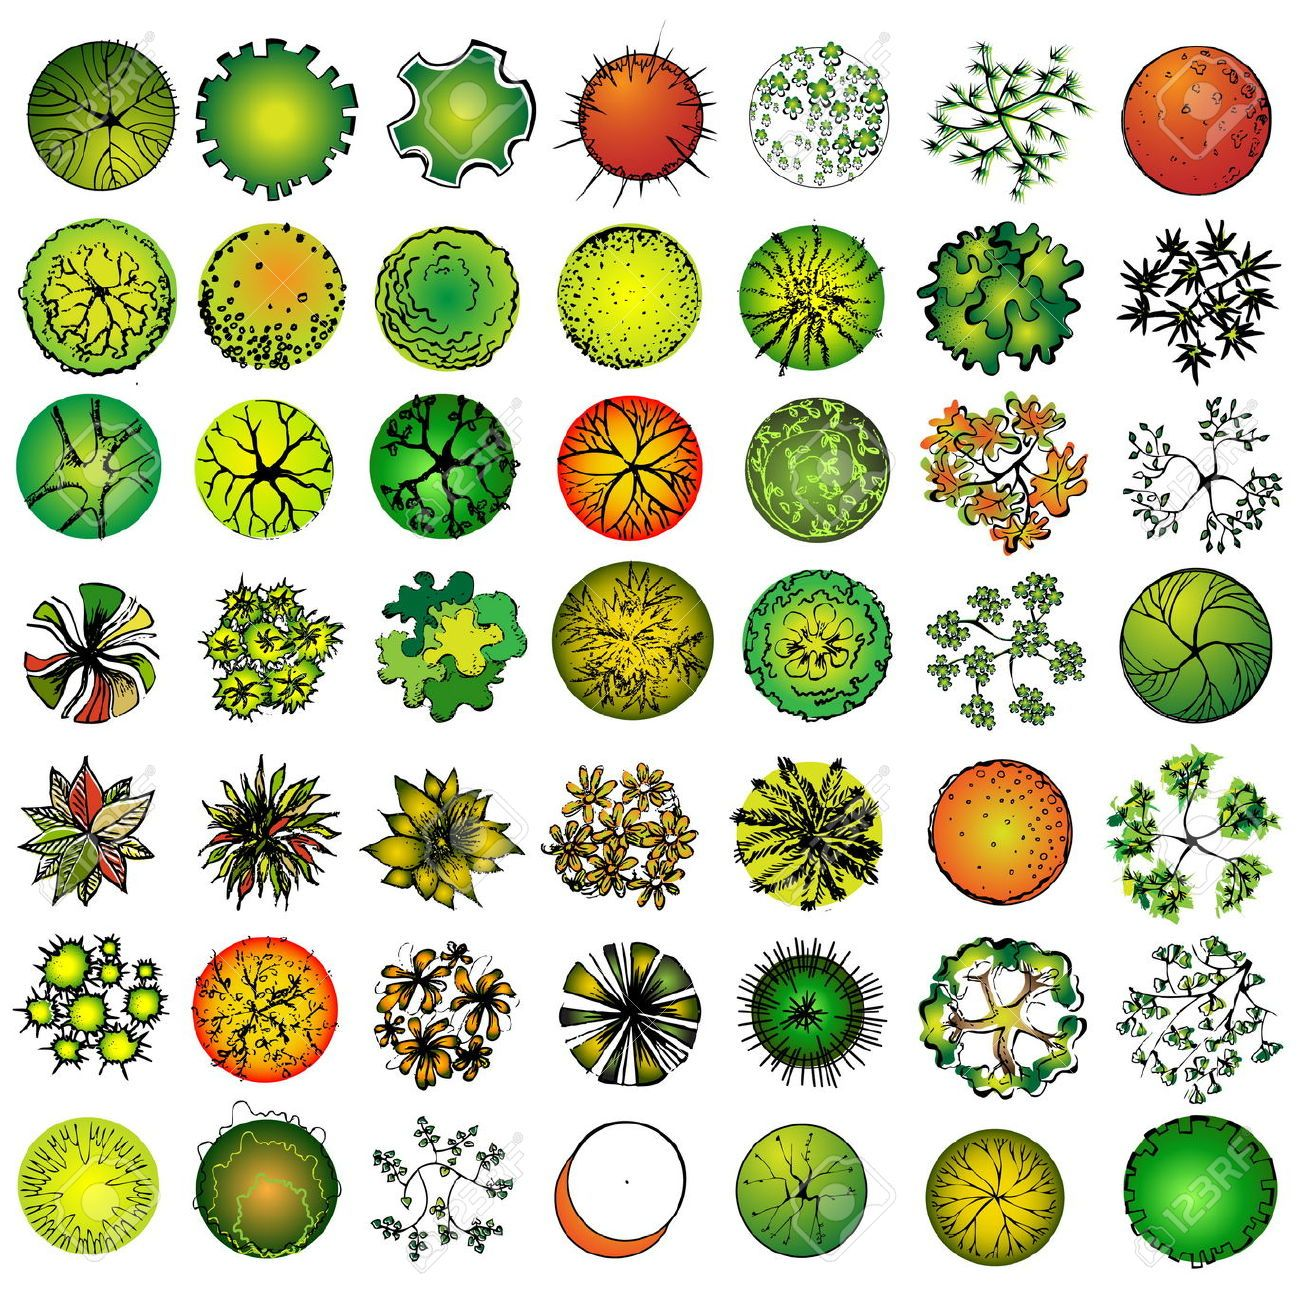 Plant Stock Photos Images, Royalty Free Plant Images And Pictures ... for Plant Top View Vector  242xkb